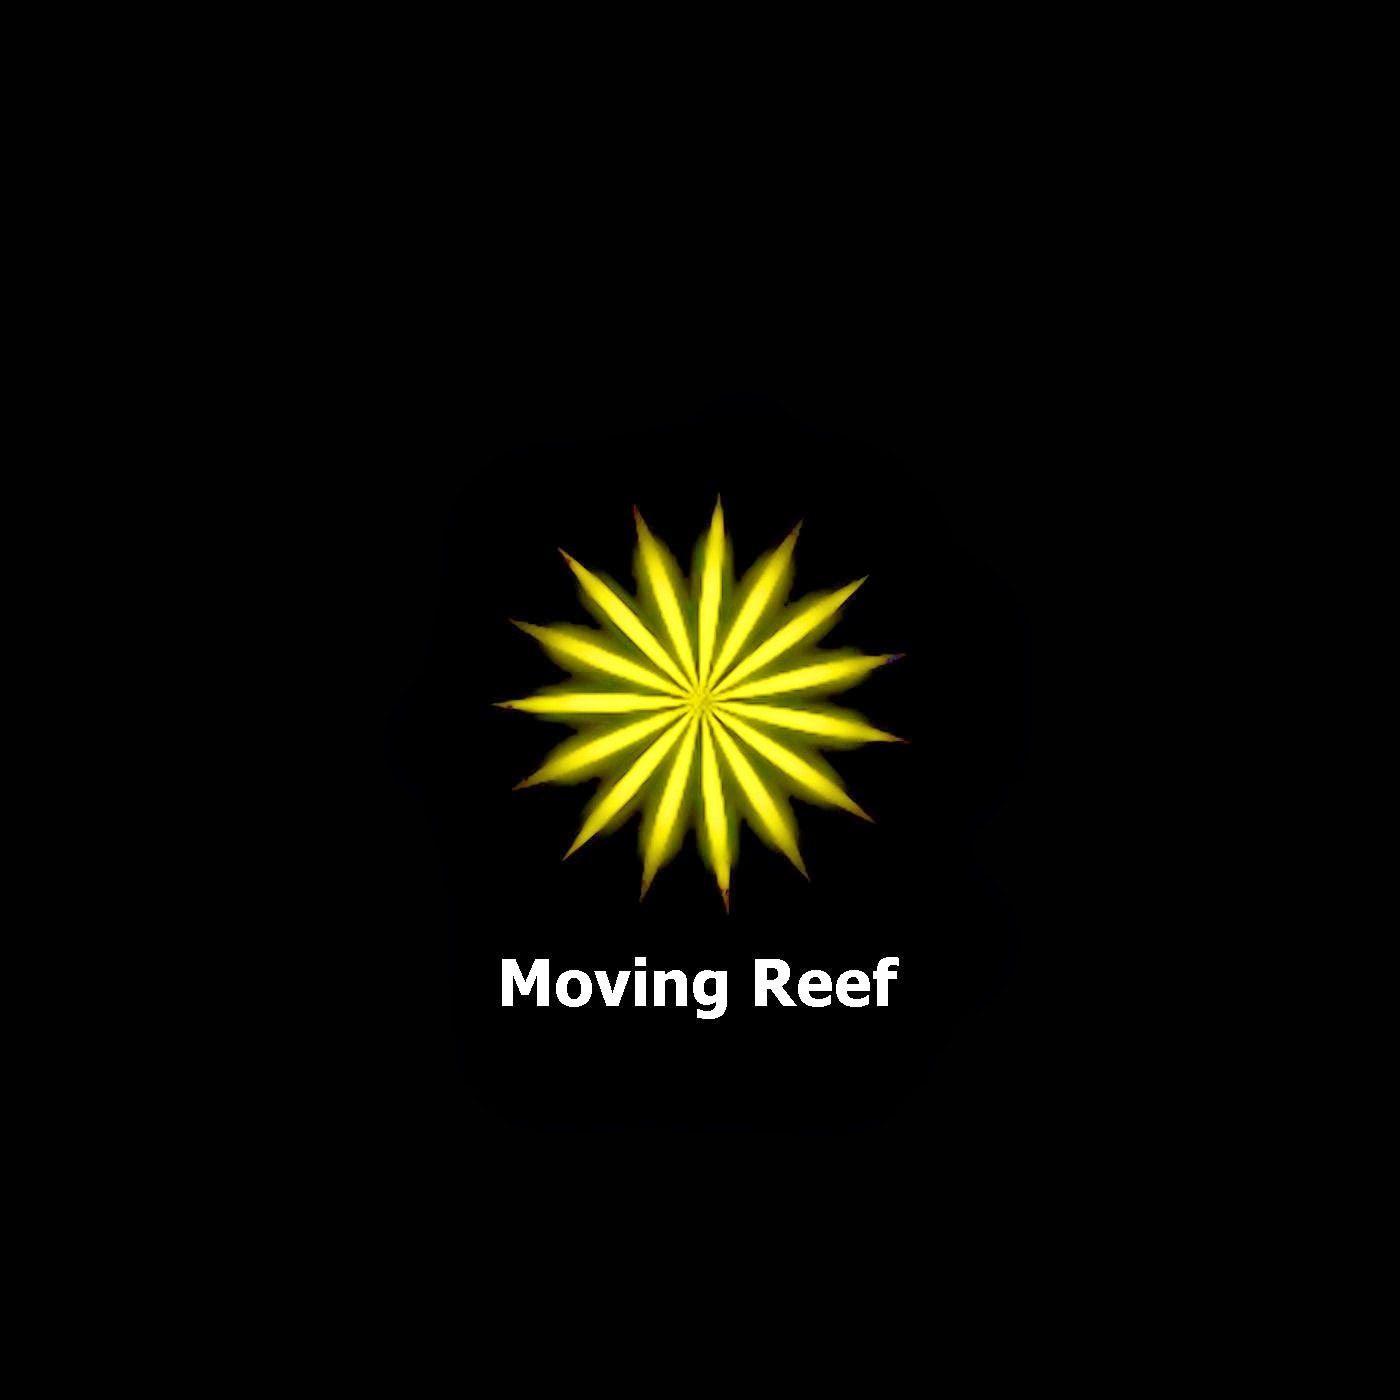 Moving Reef